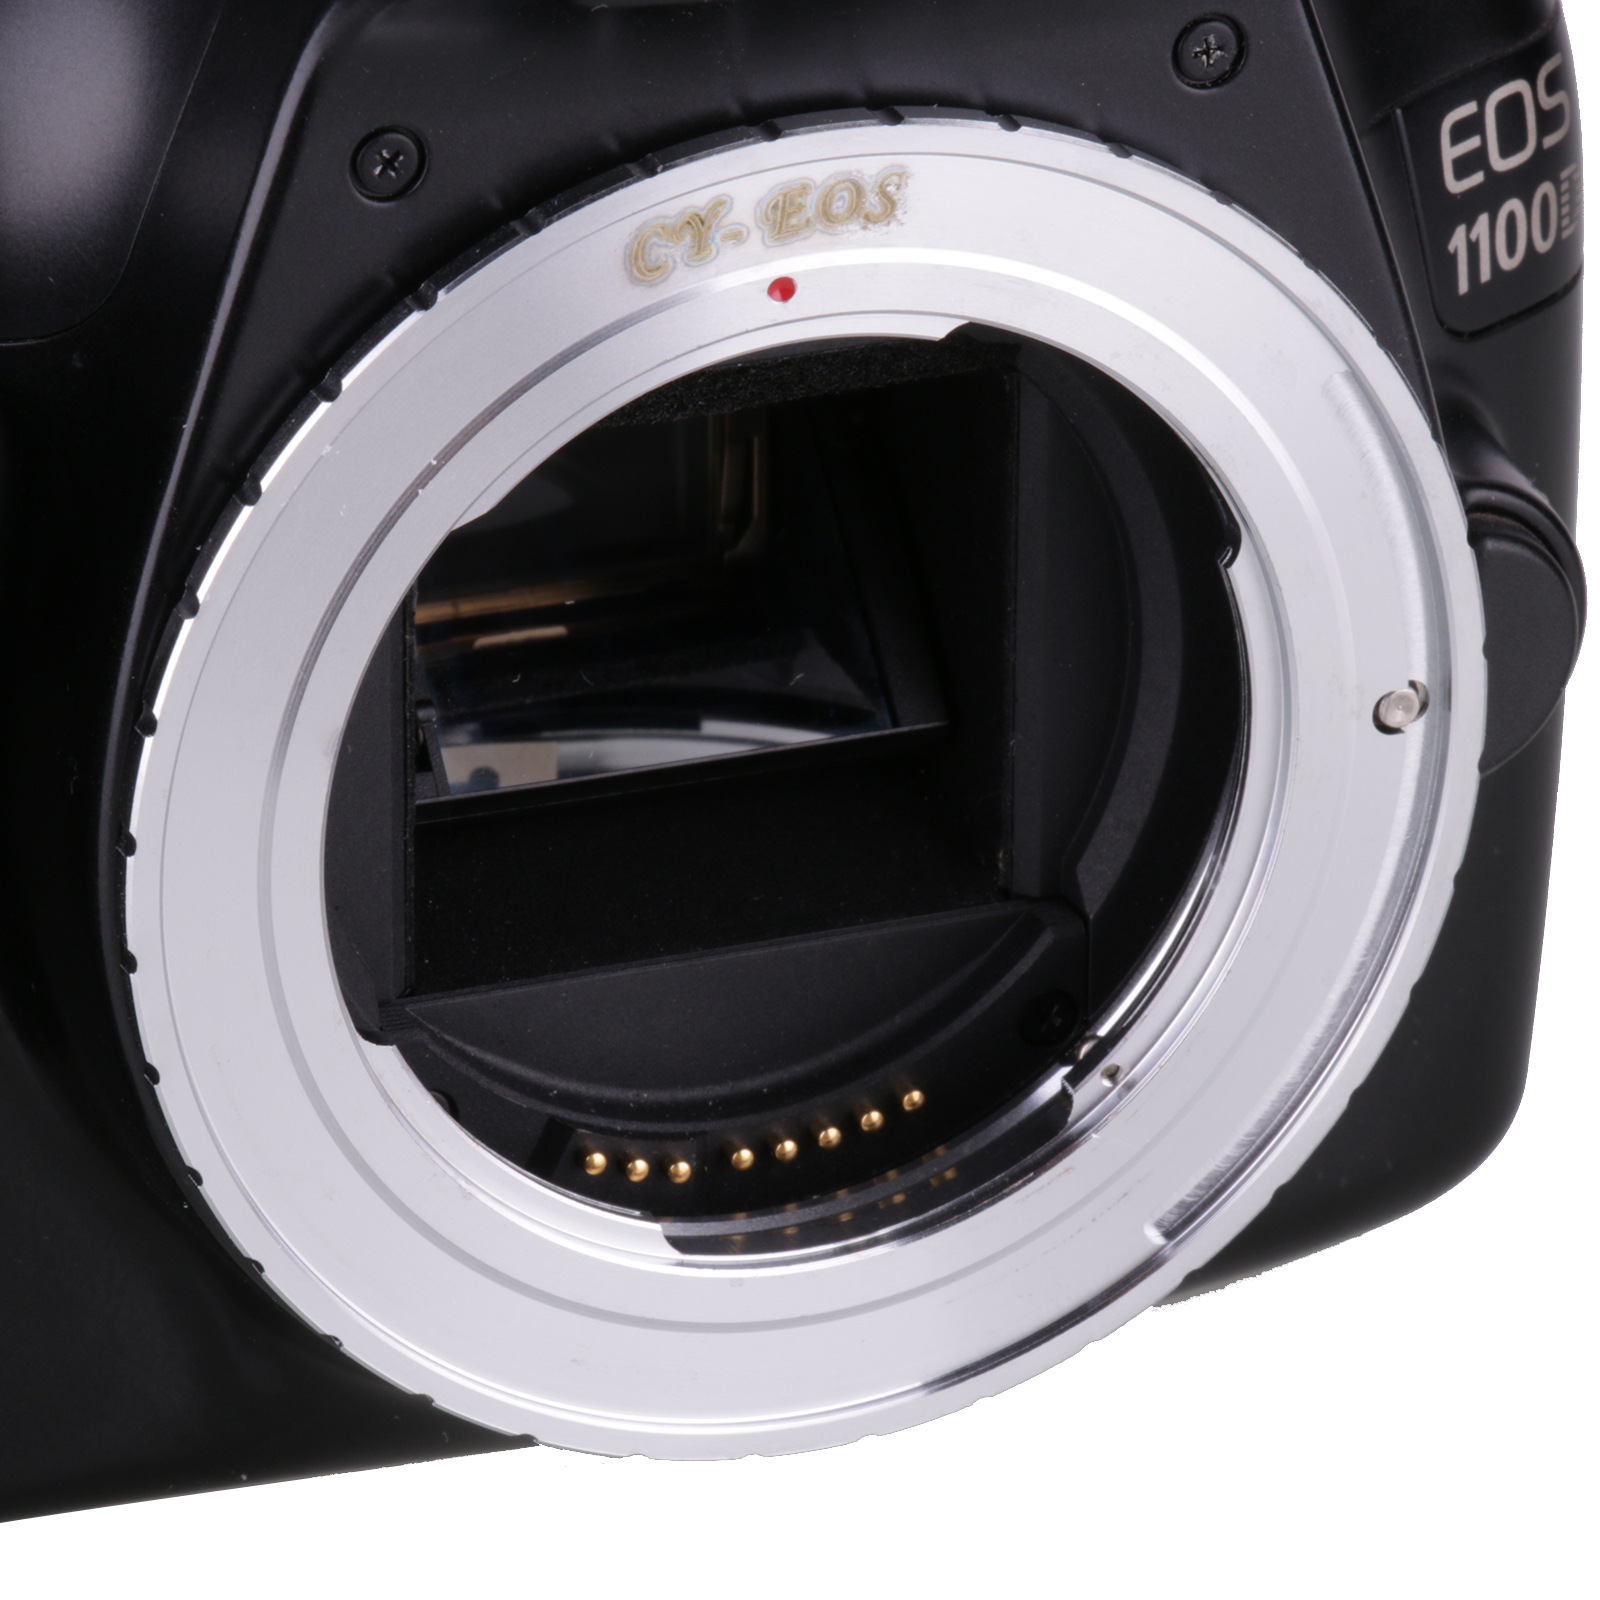 CY-EOS Comfirm C/Y CY Contax Yashica Lens To EF Adapter Ring For EOS EF 60D 40D 50D 550D 600D DSLR Camera